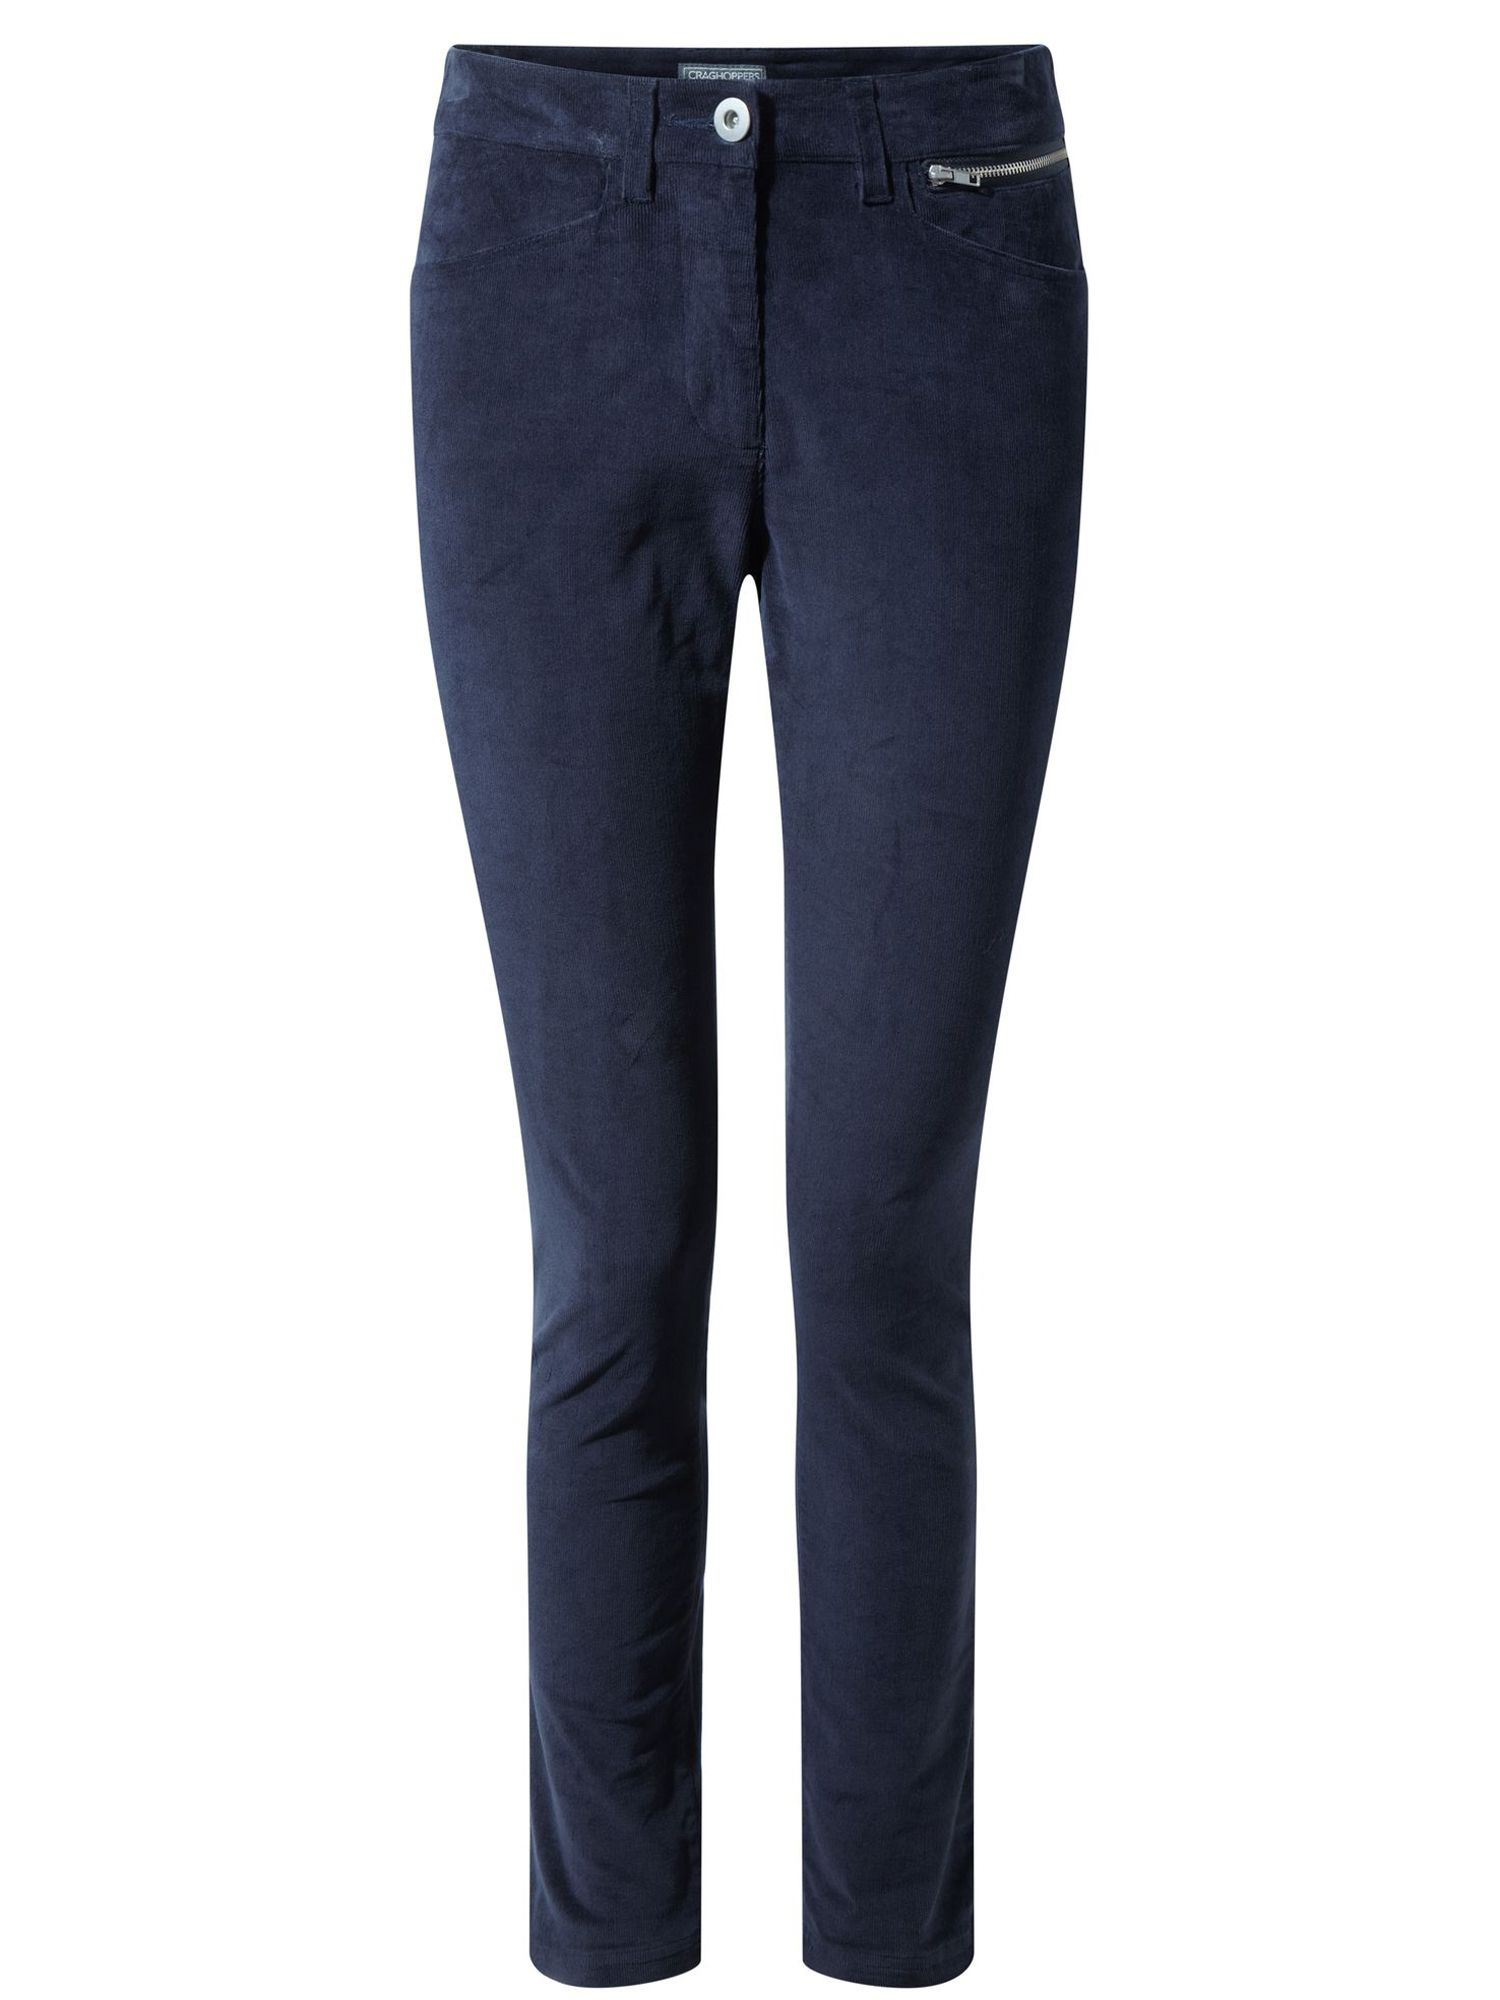 Craghoppers Ester Trousers, Blue